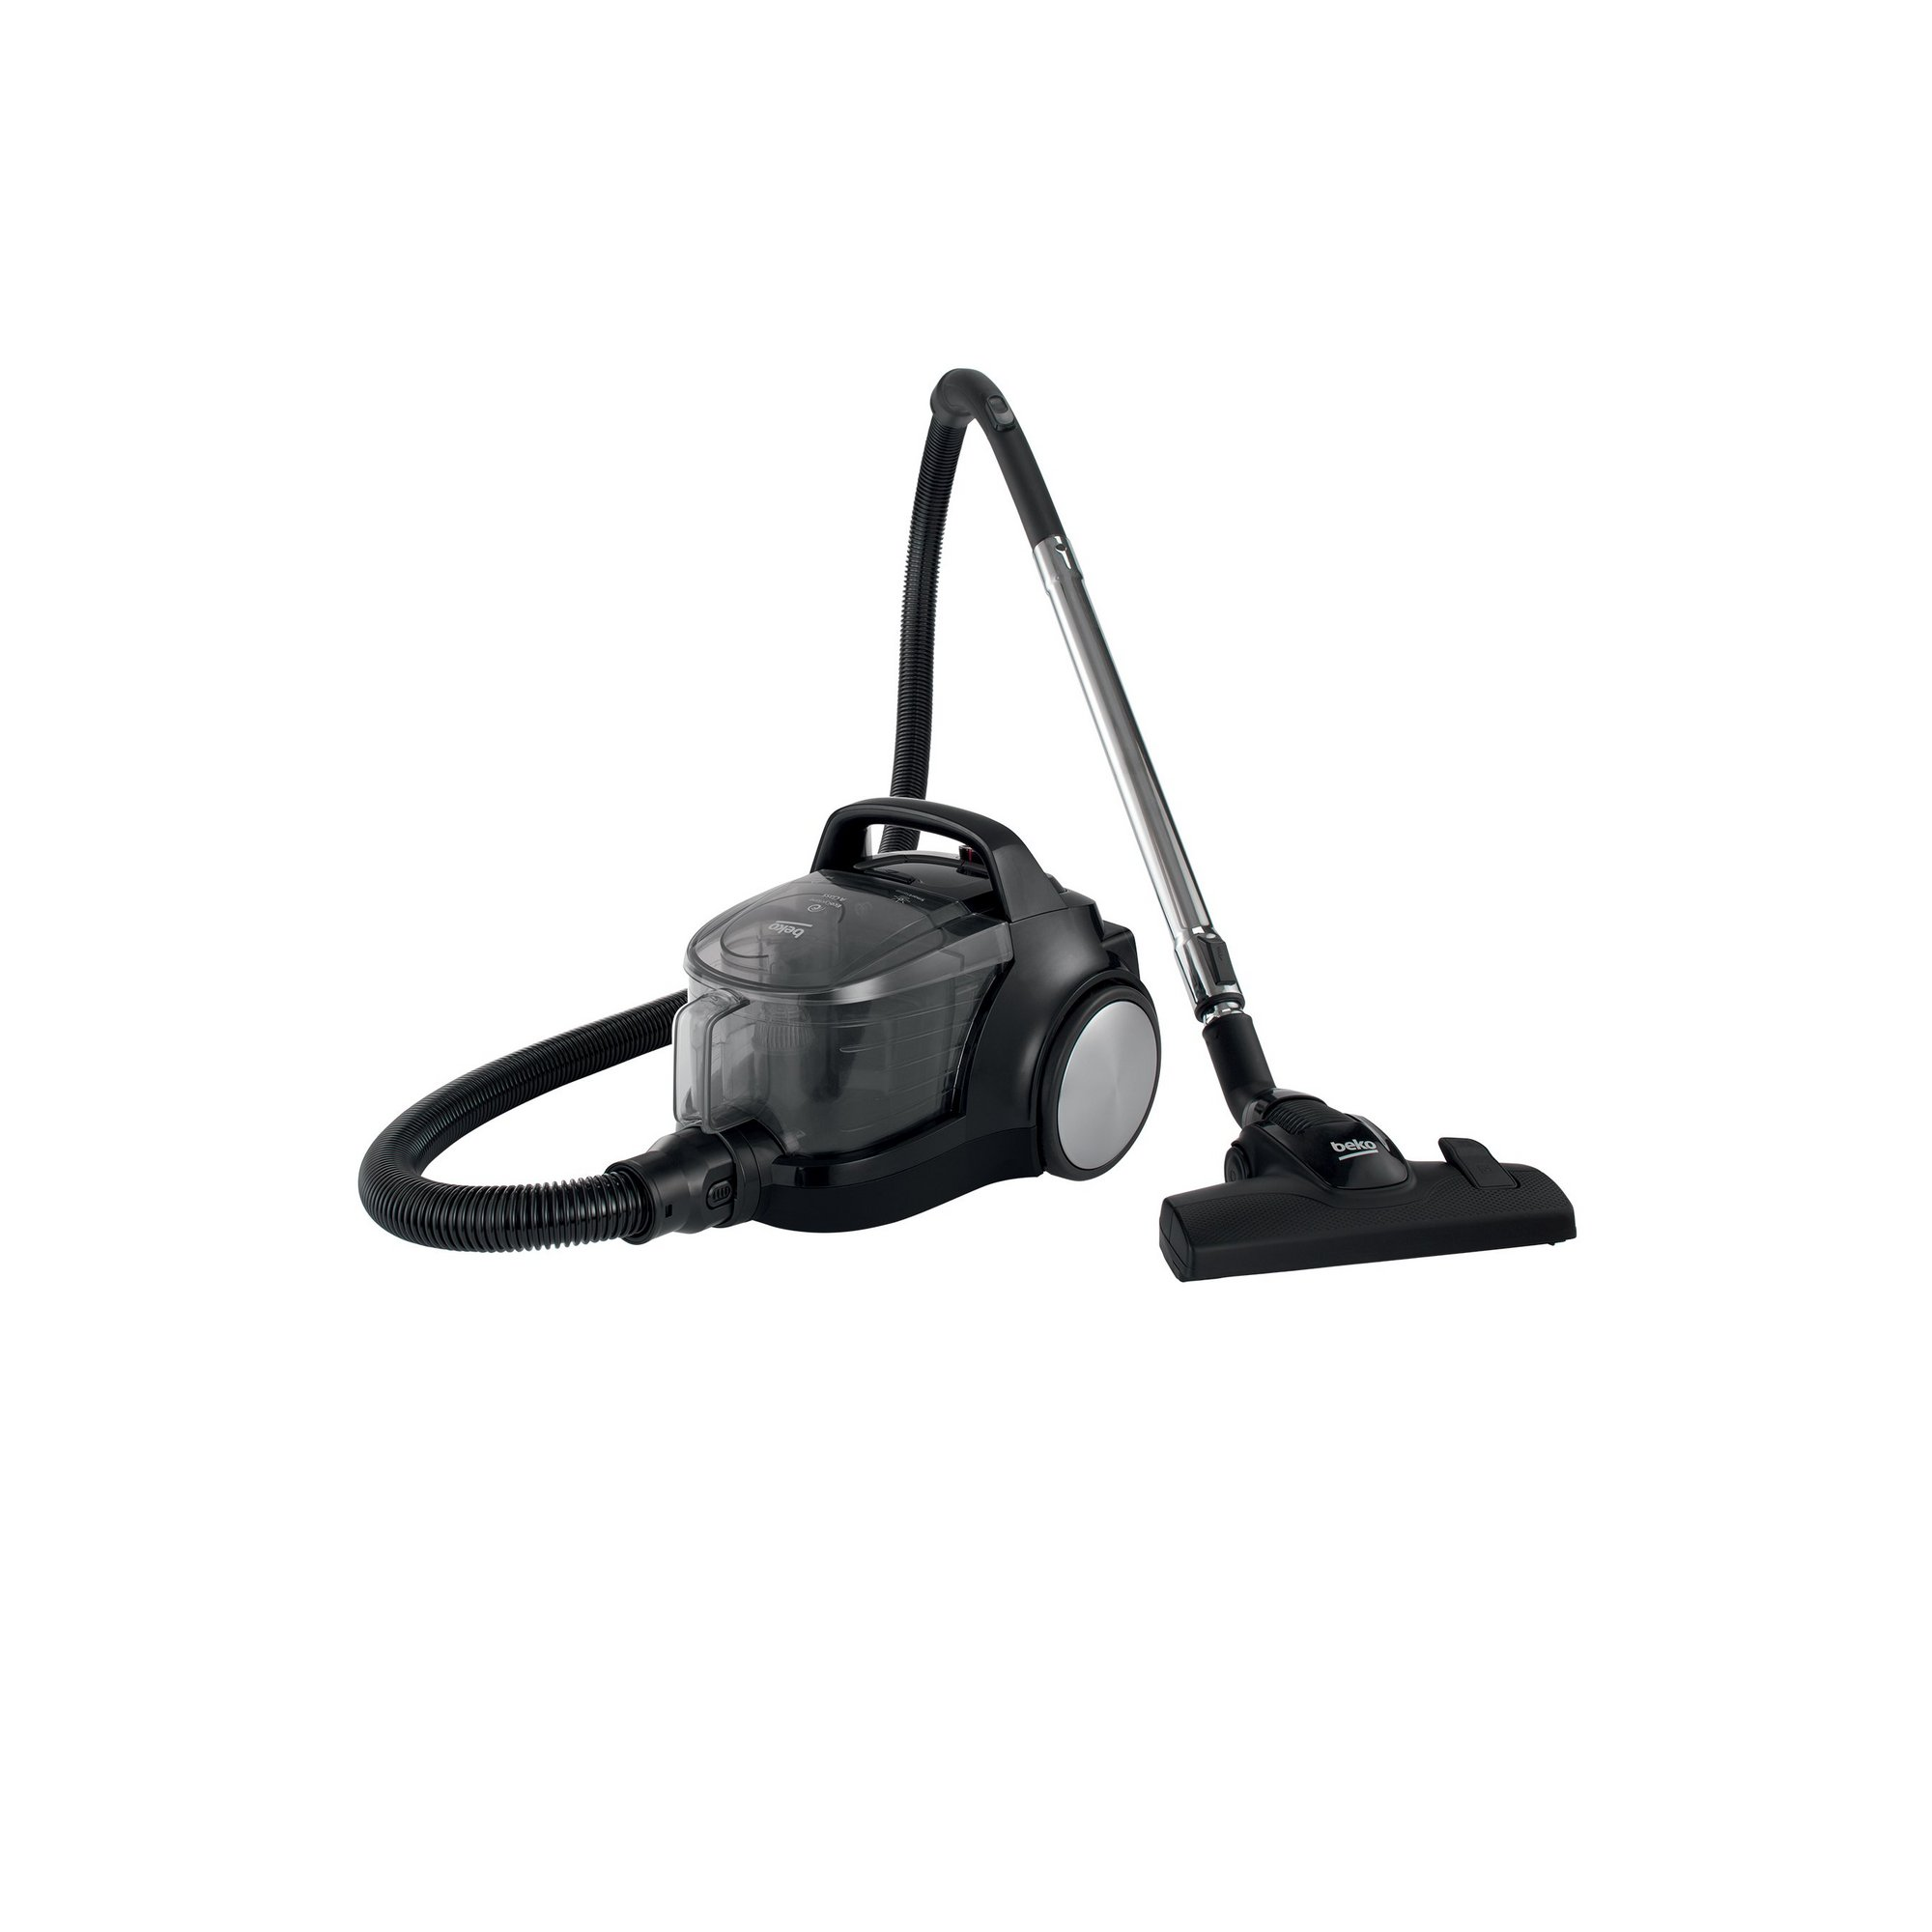 Image of Beko 1.8L Bagless Cylinder Vacuum Cleaner